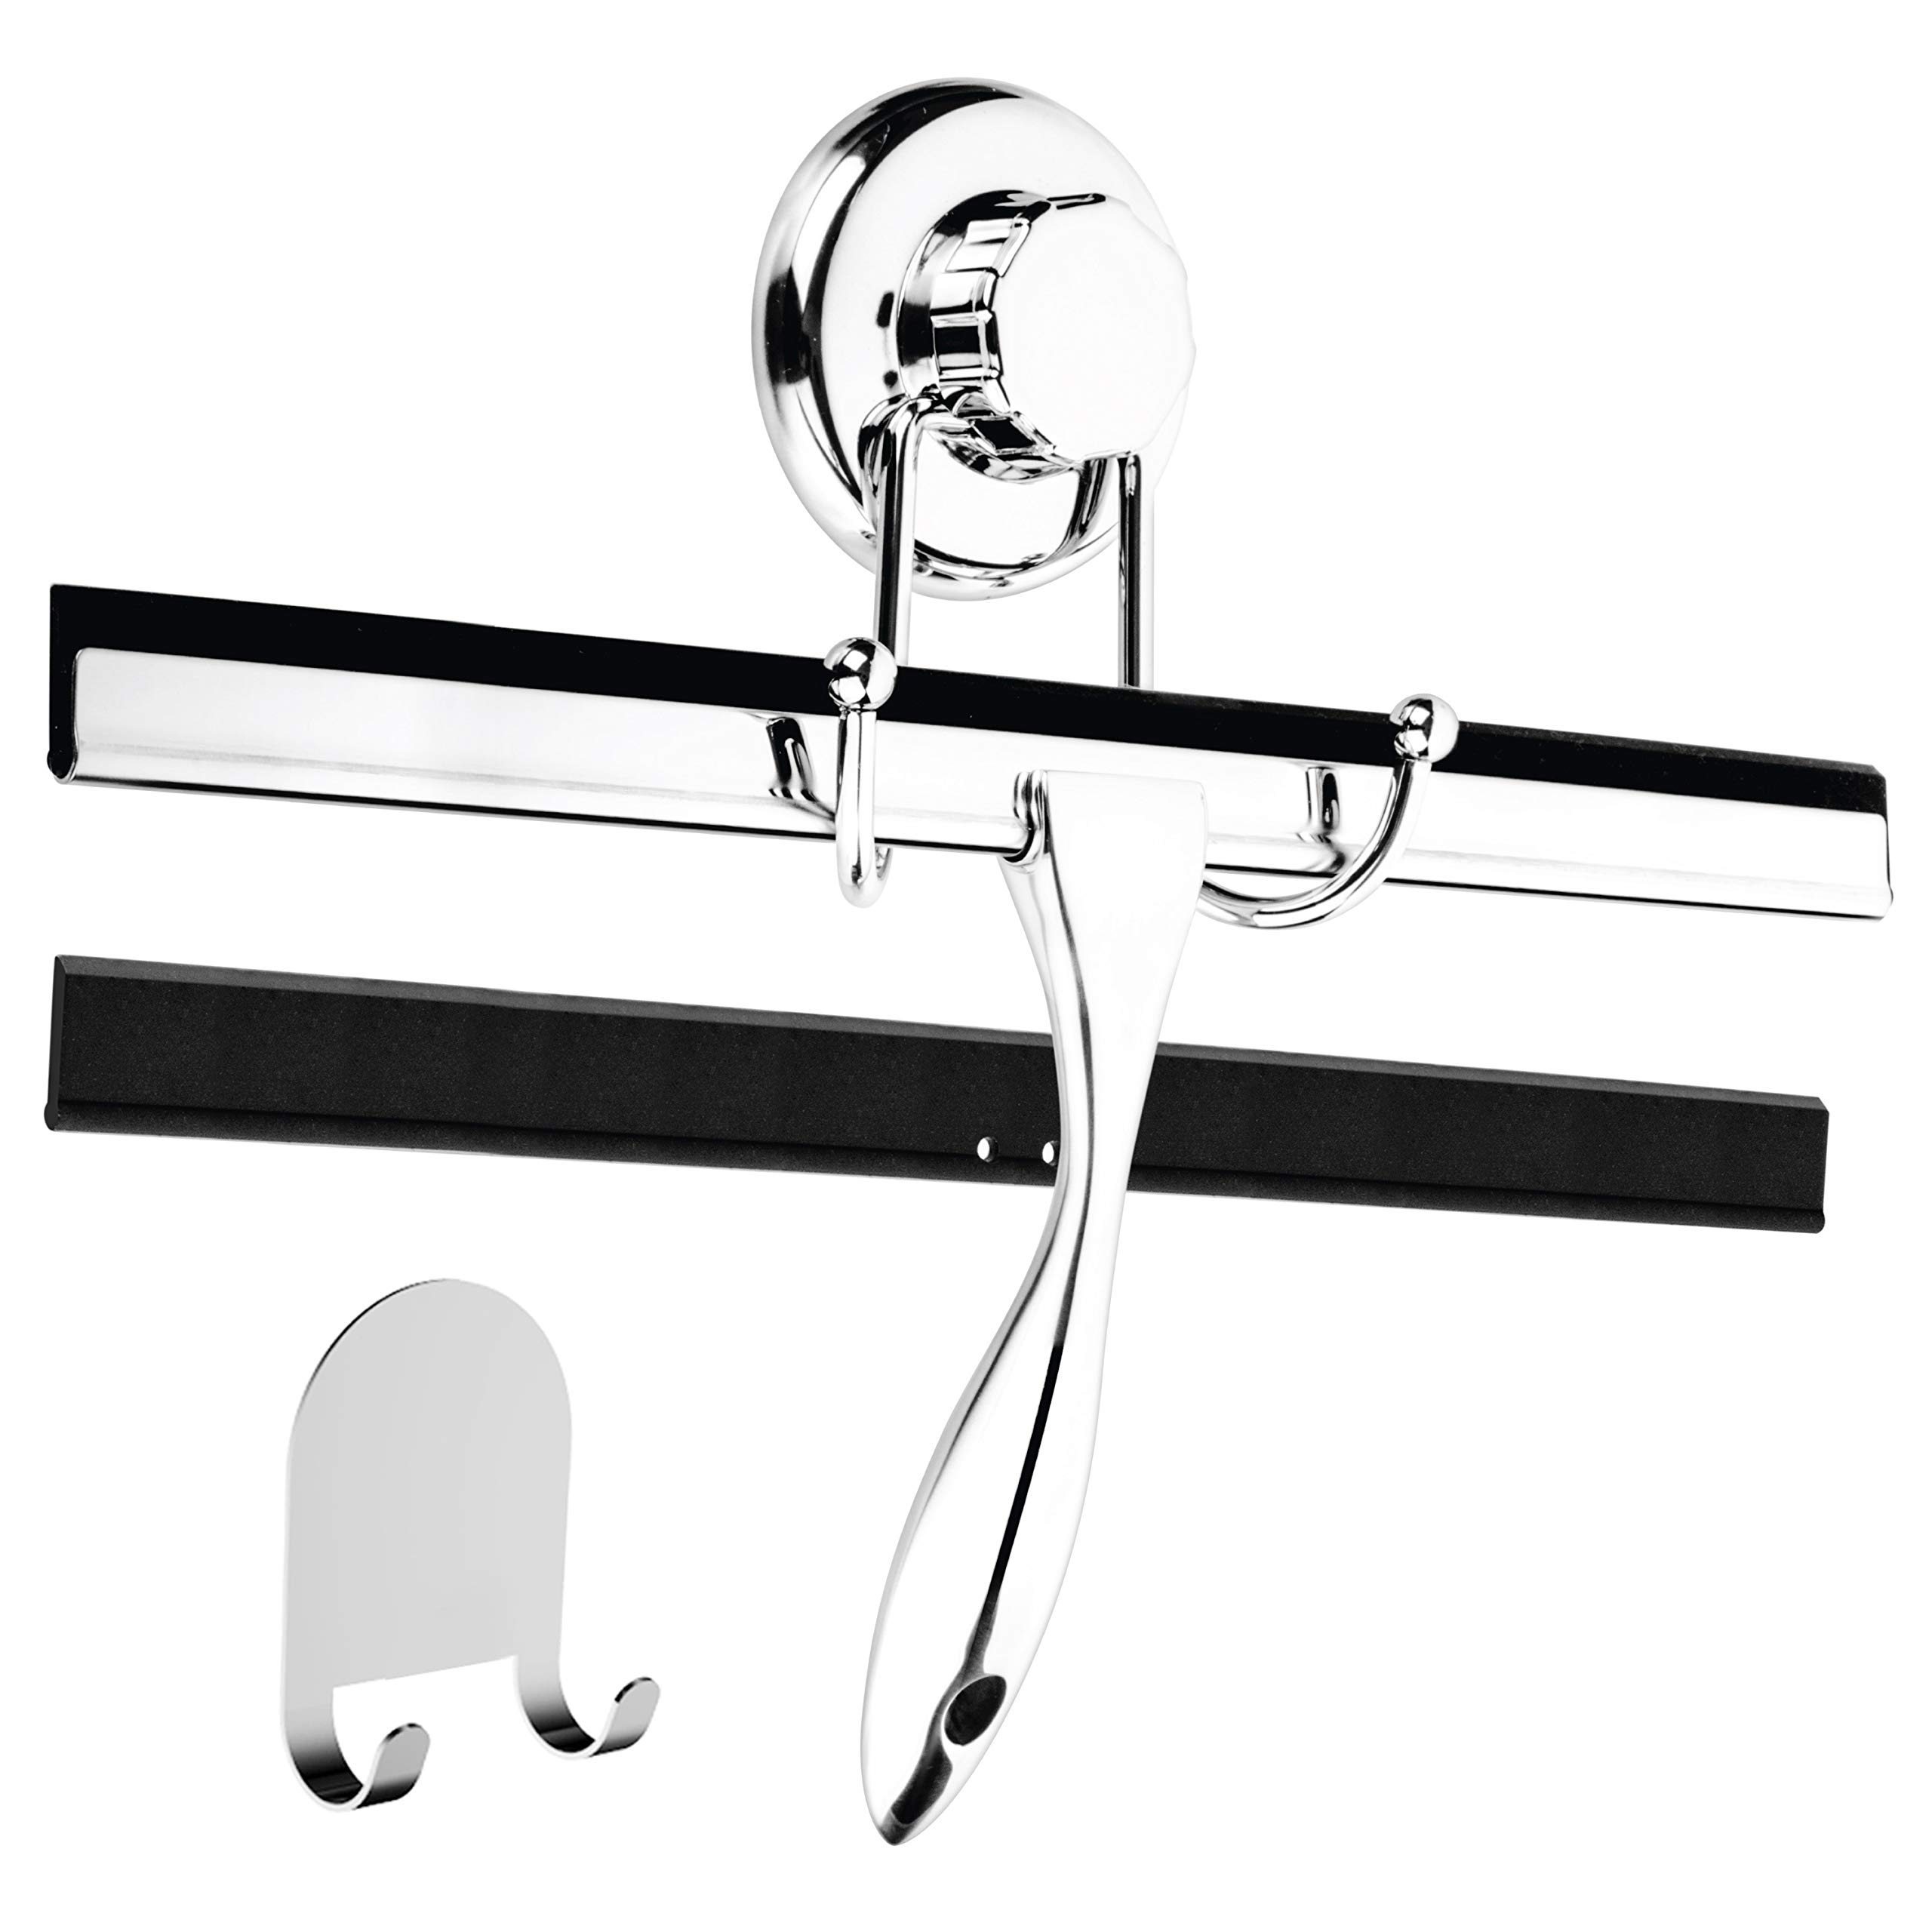 HASKO accessories 12-Inch Bathroom Shower Squeegee - Chrome Plated Stainless Steel - with Matching Suction Cup Hook Holder - 3M Adhesive Mounting Disc, 3M Hook,1 Replacement Rubber Blade by HASKO accessories